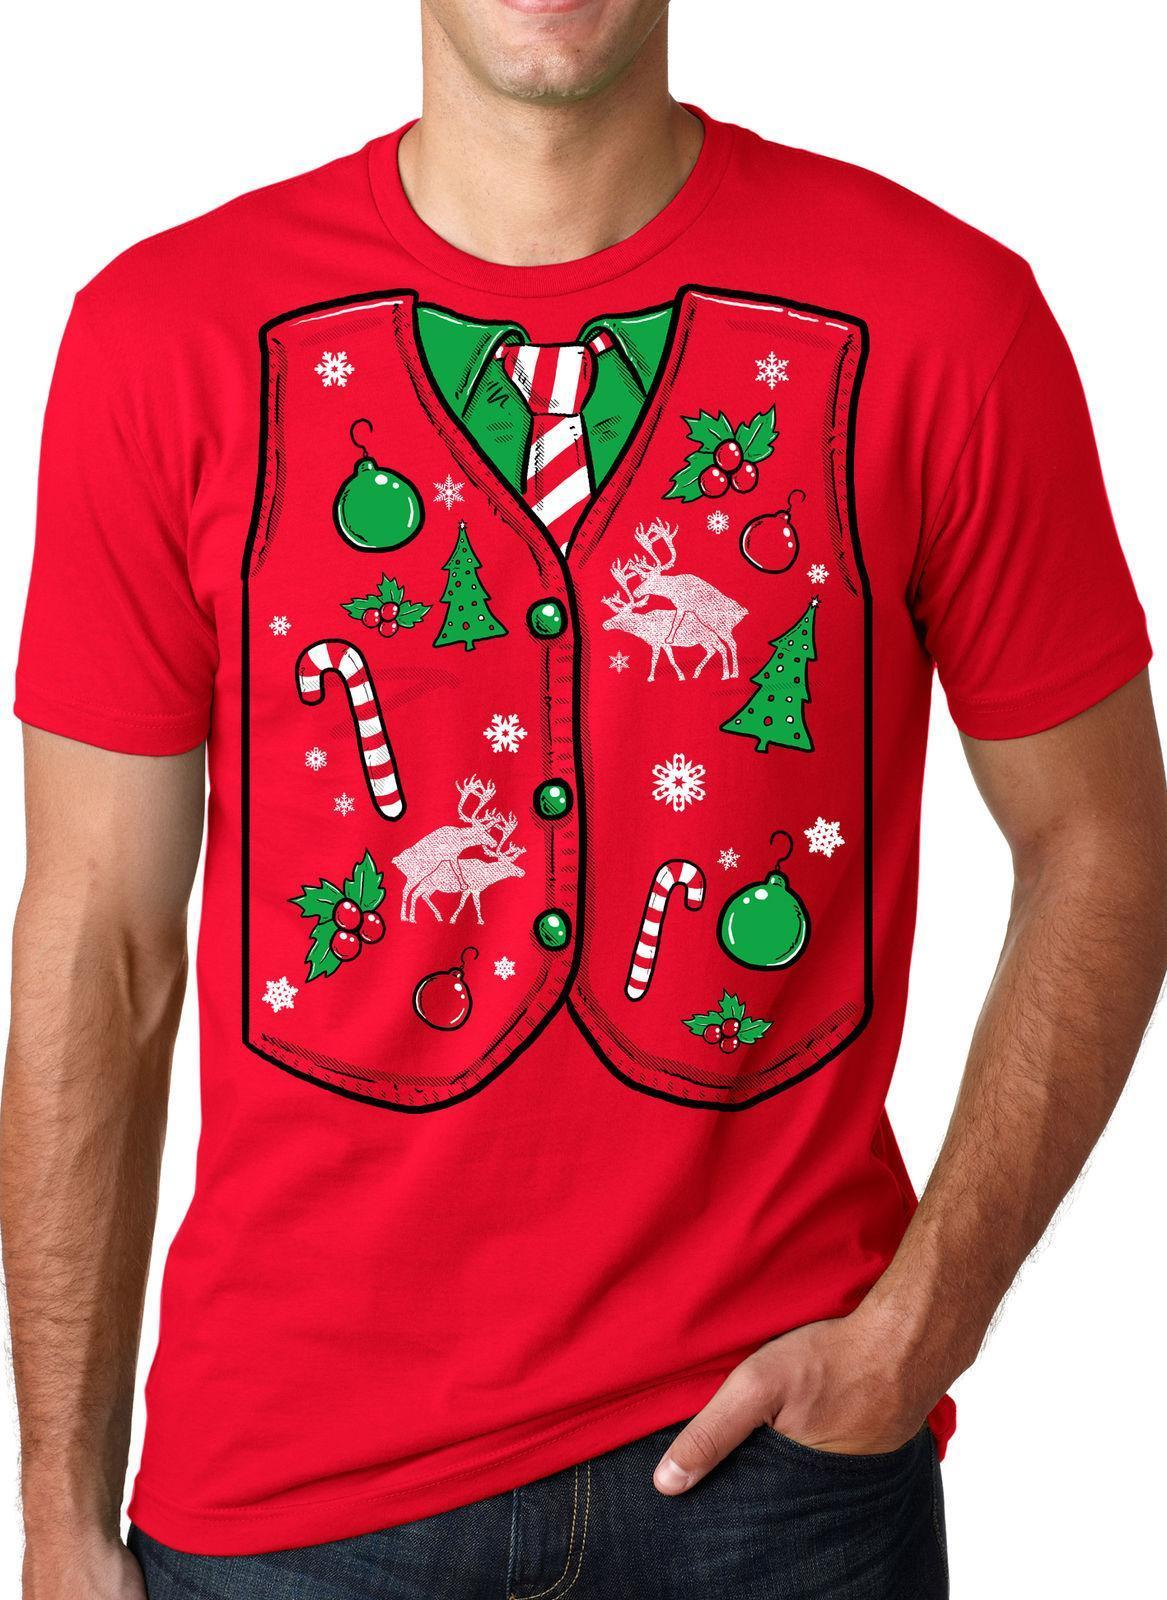 ugly christmas sweater vest t shirt funny holiday shirts humorous xmas gift tees latest t shirts design best t shirts design from amesion67 1208 dhgate - Christmas Sweater Vest